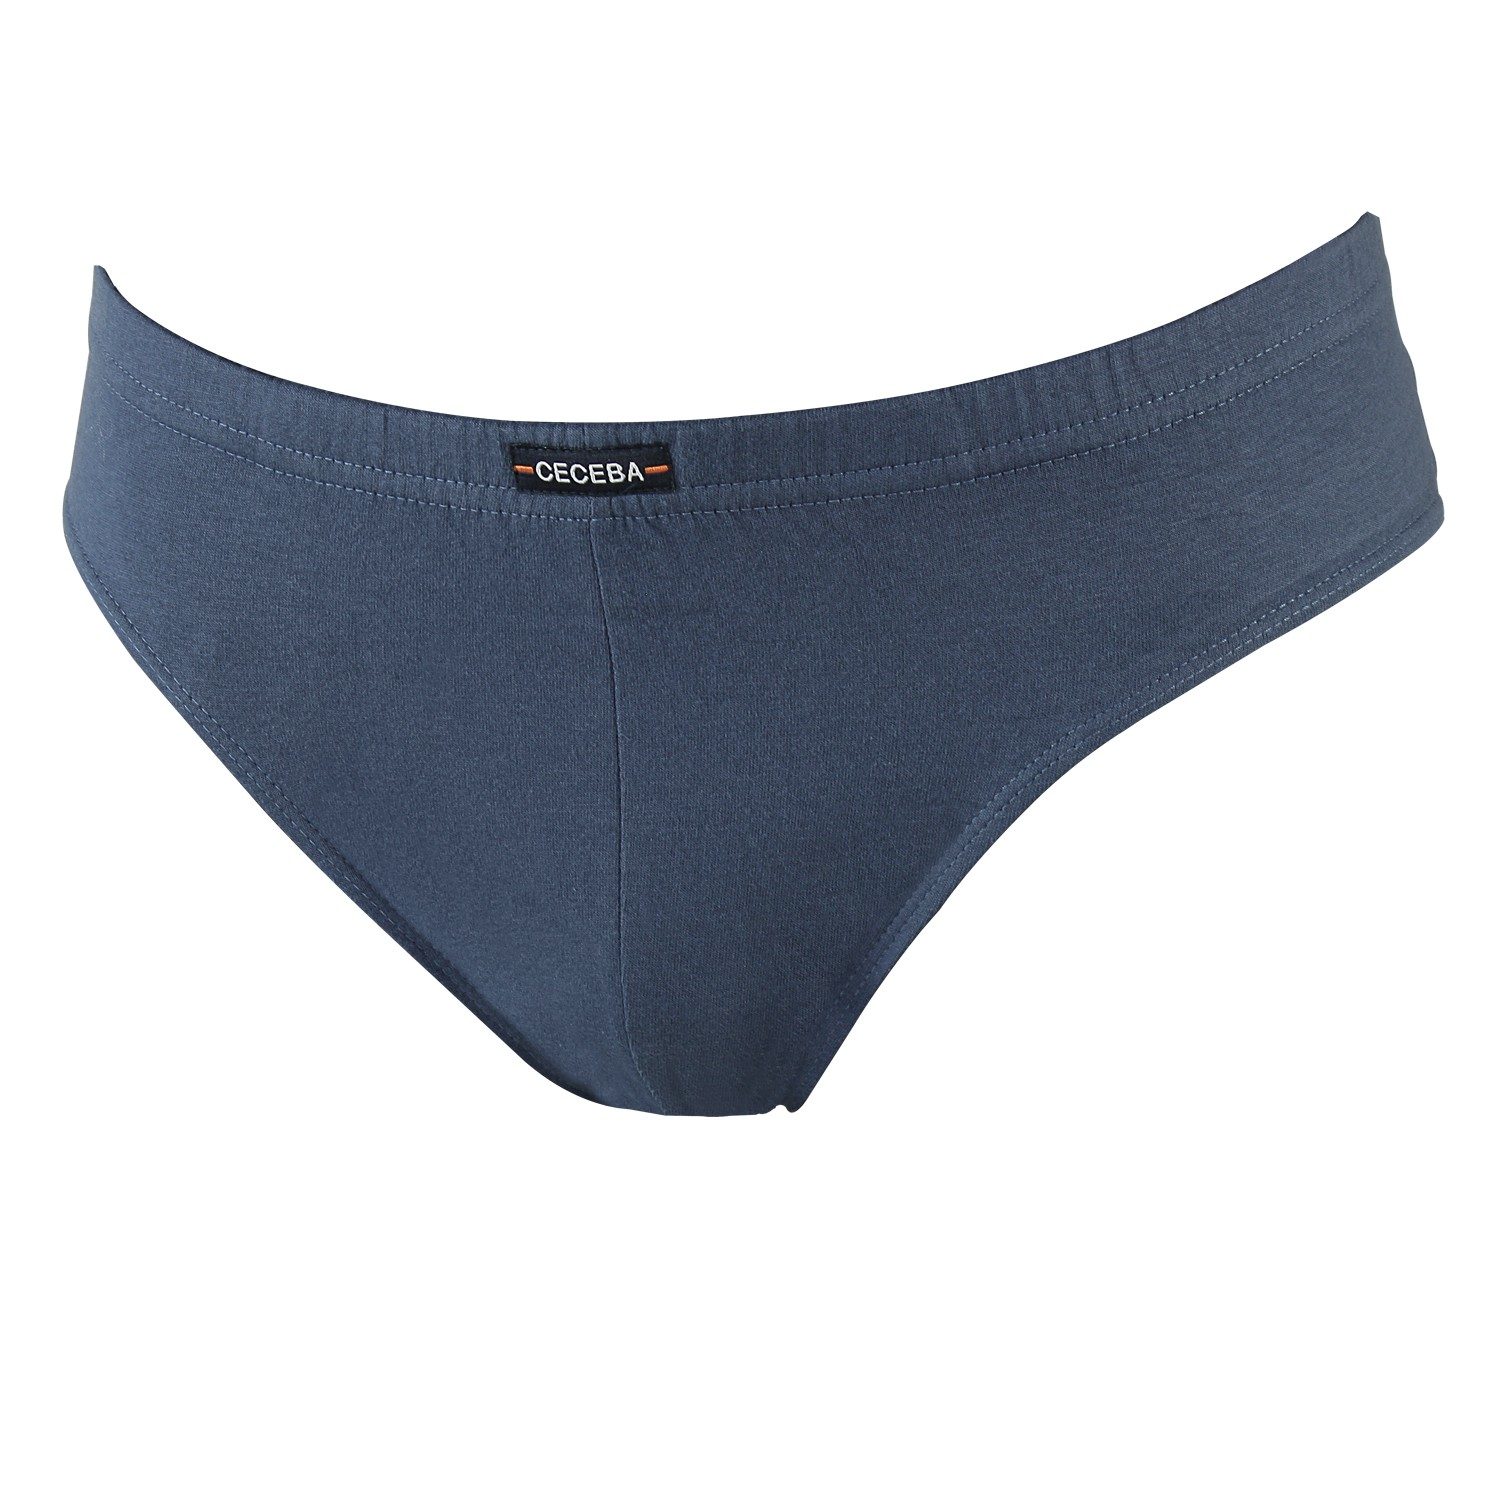 Detail Image to Briefs in dark blue by Ceceba up to oversize 18 / pack of 3